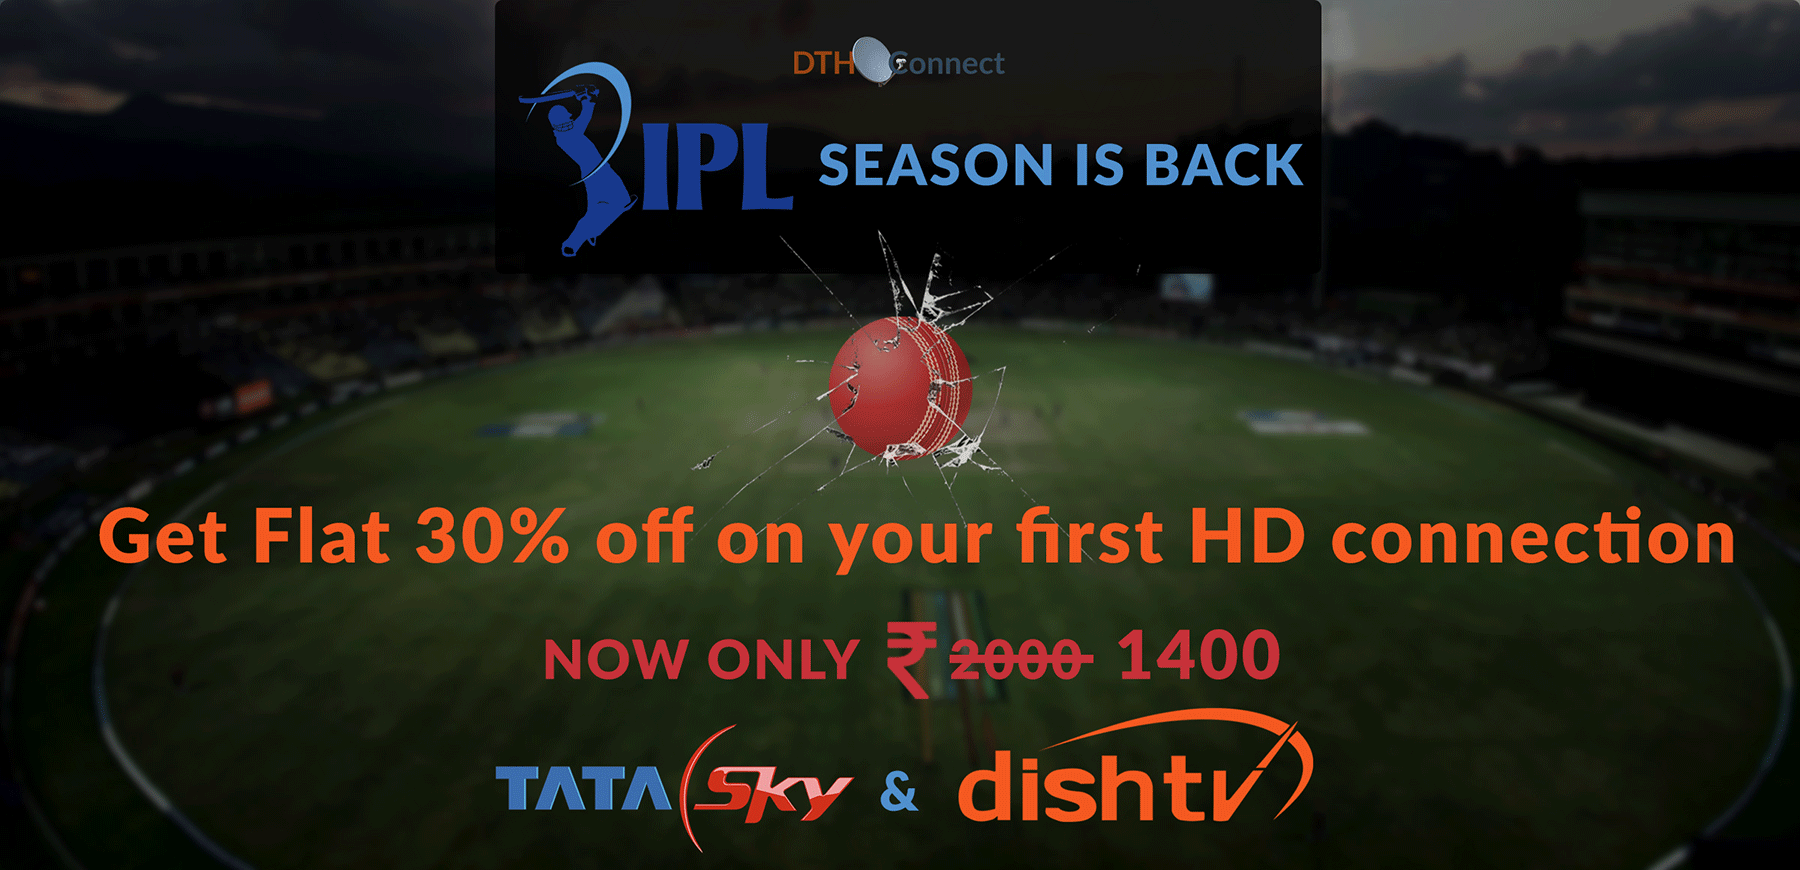 DTH-Connect-IPL Banner